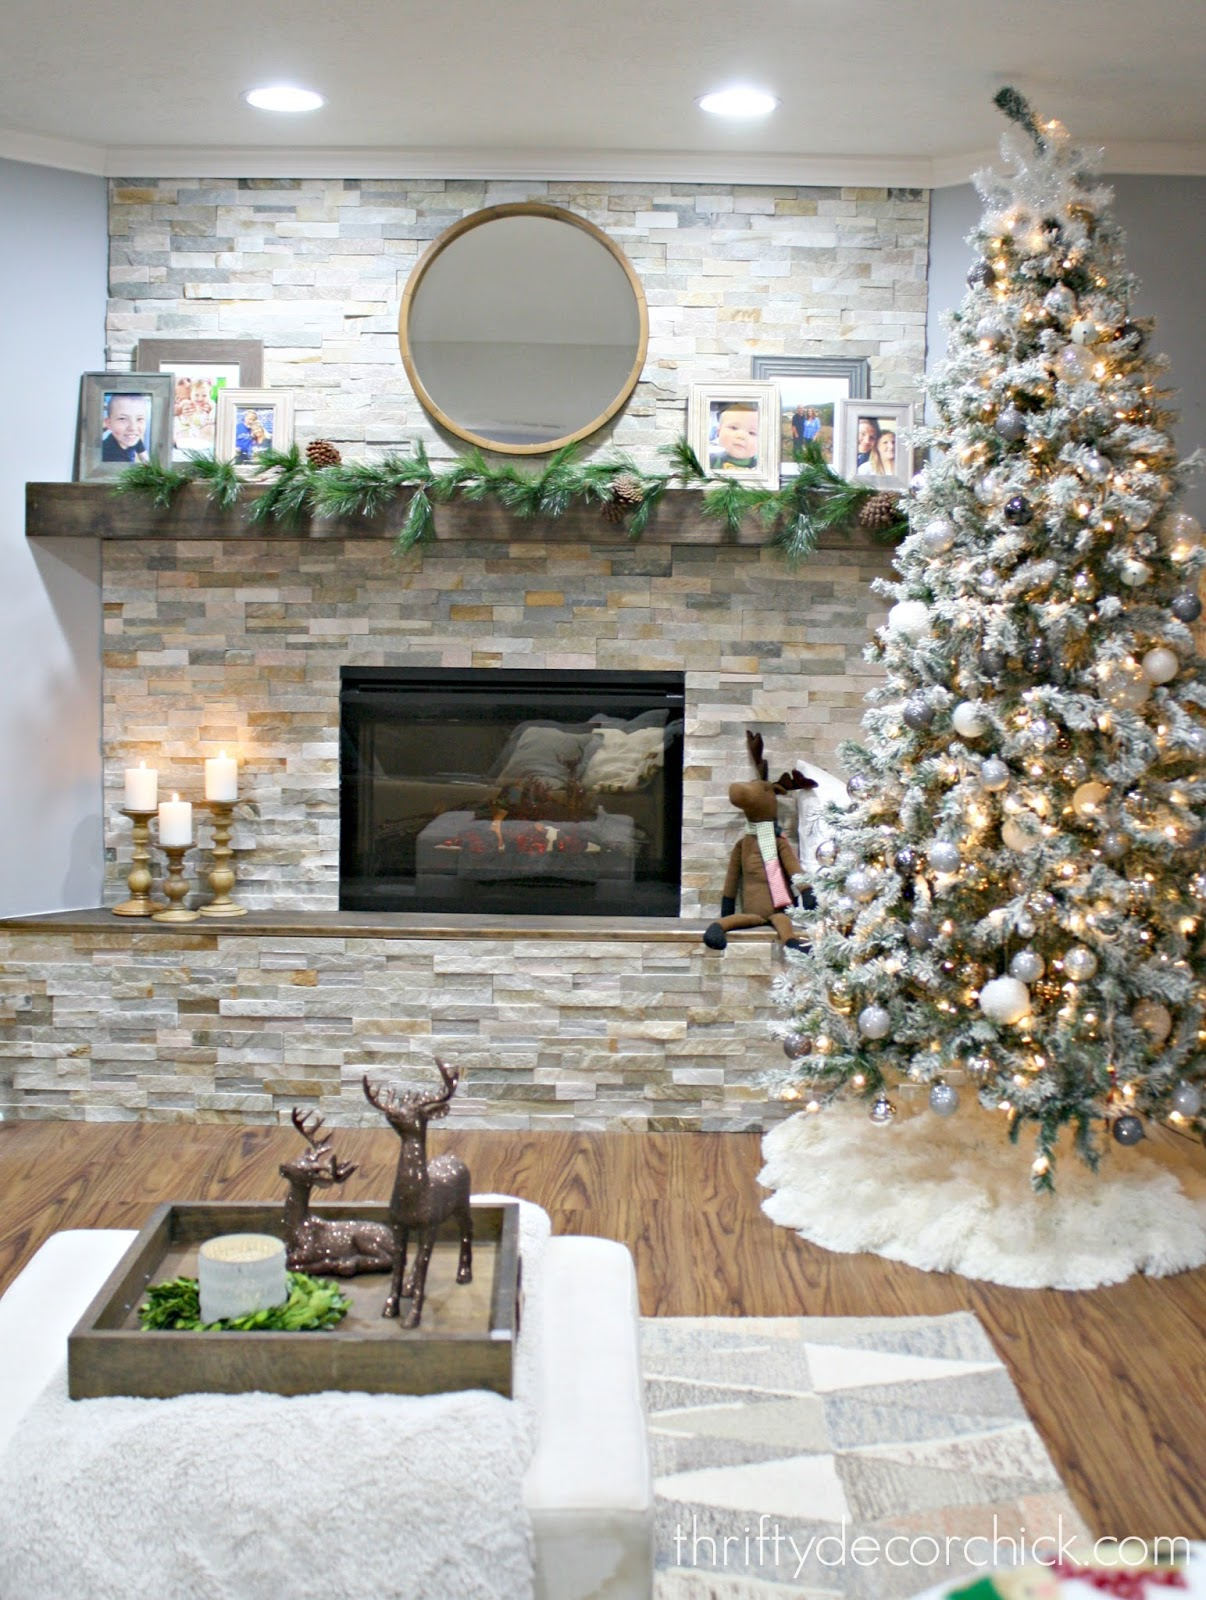 Thrifty decor chick christmas home tour from thrifty for Thrifty decor